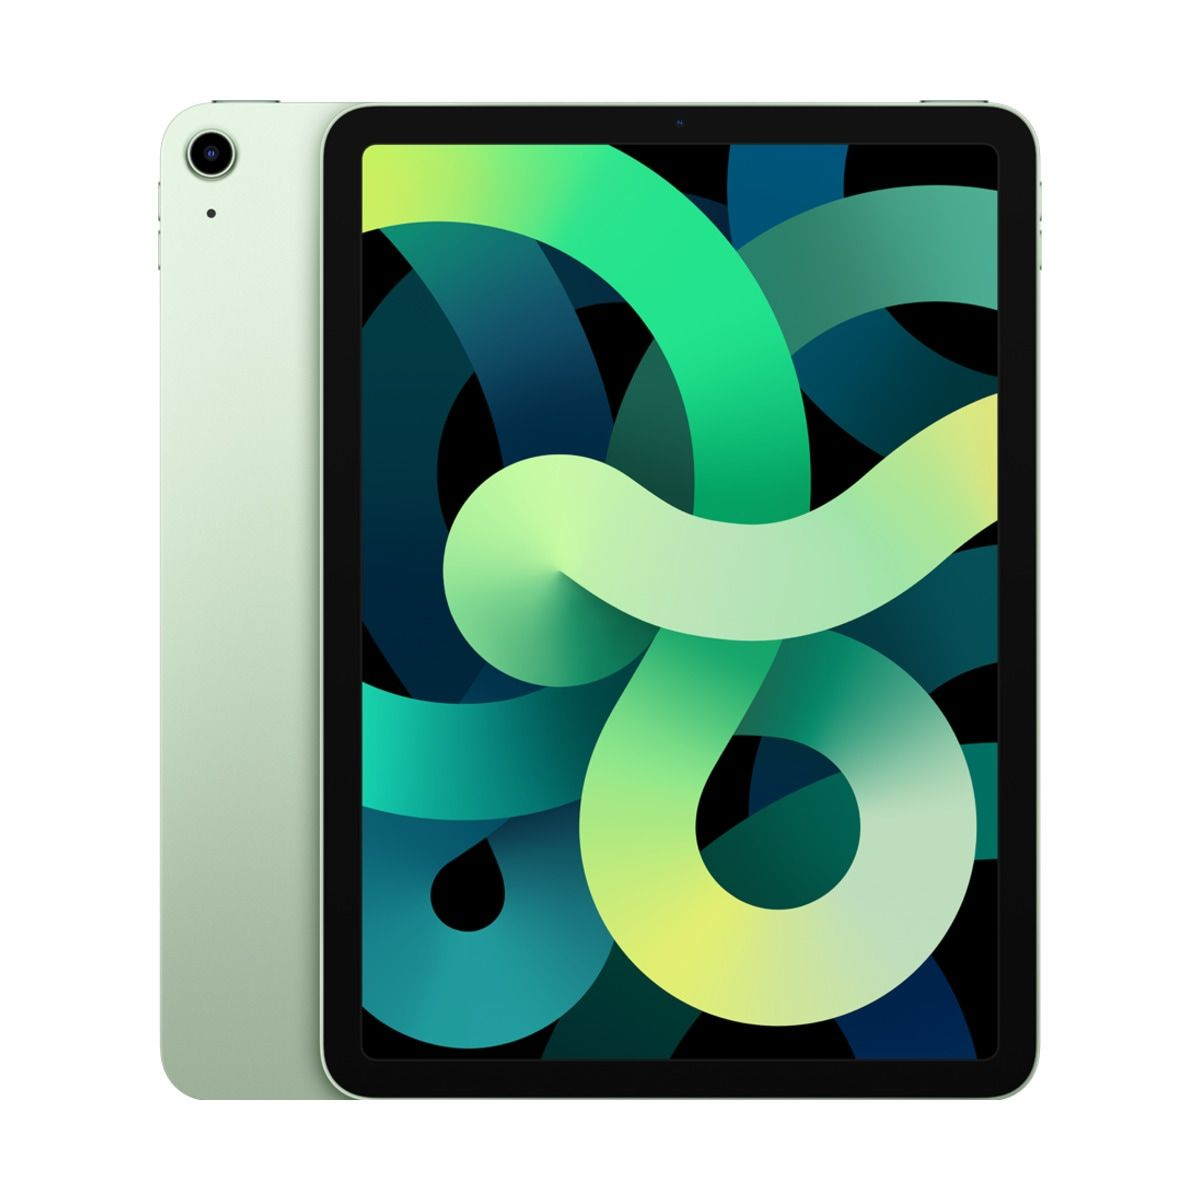 iPad Air Wi-Fi 64GB - Green